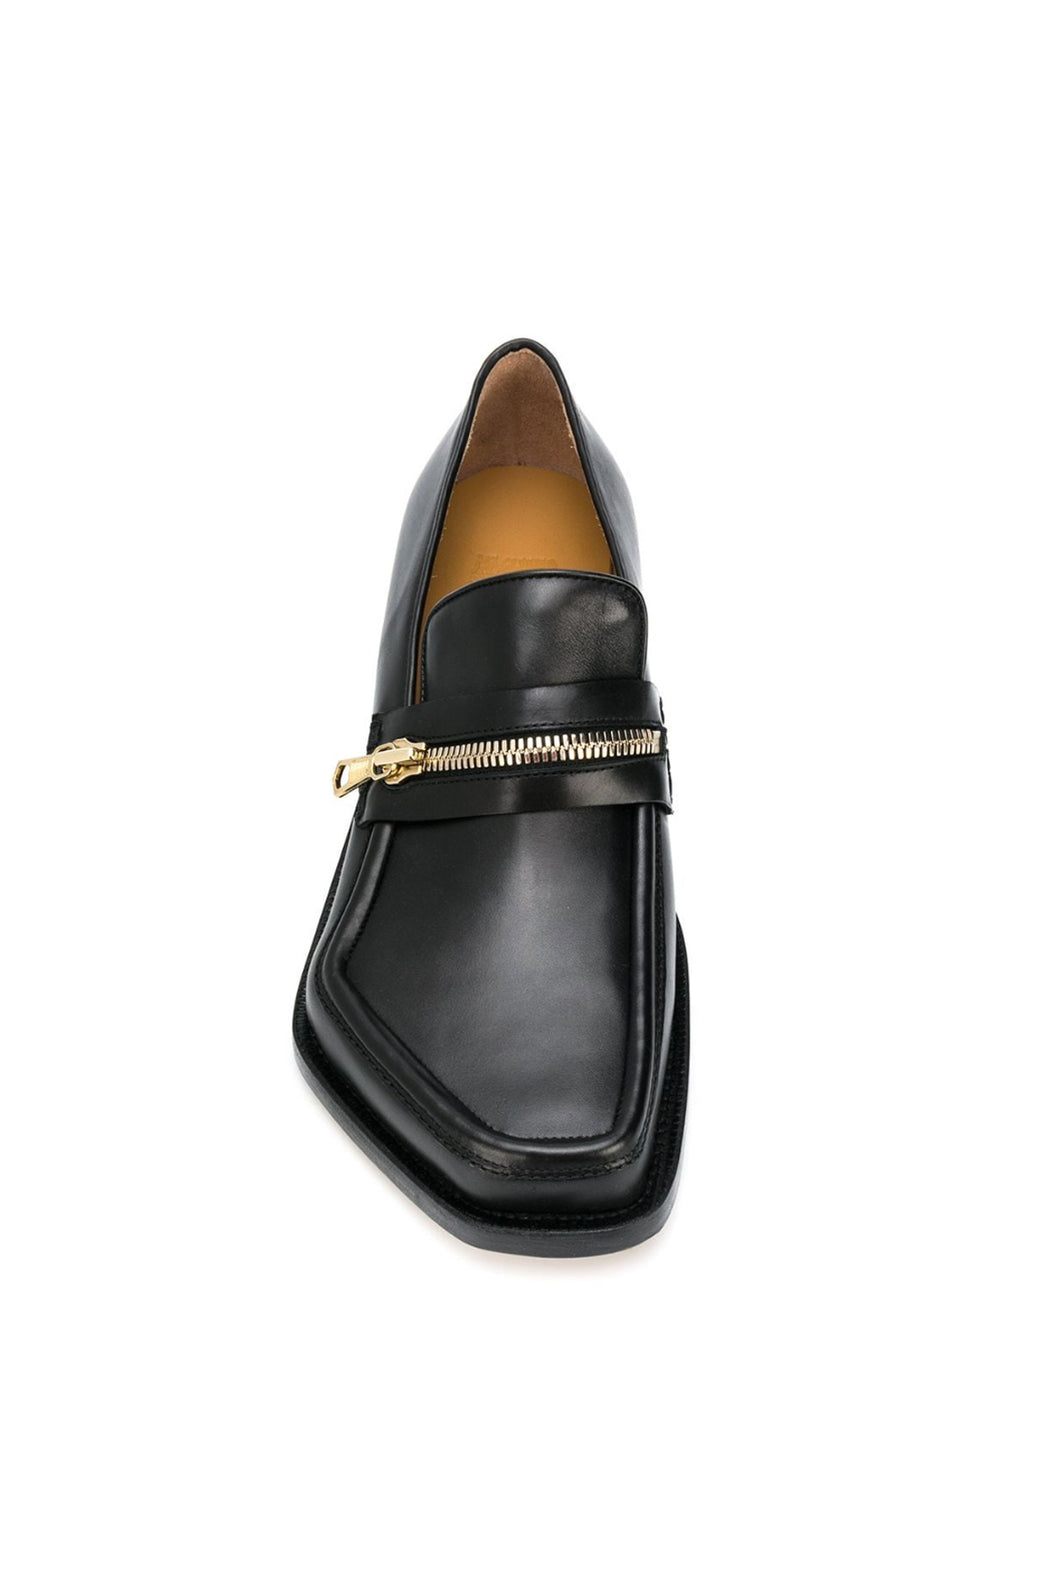 Monster Loafer Zipped - Black